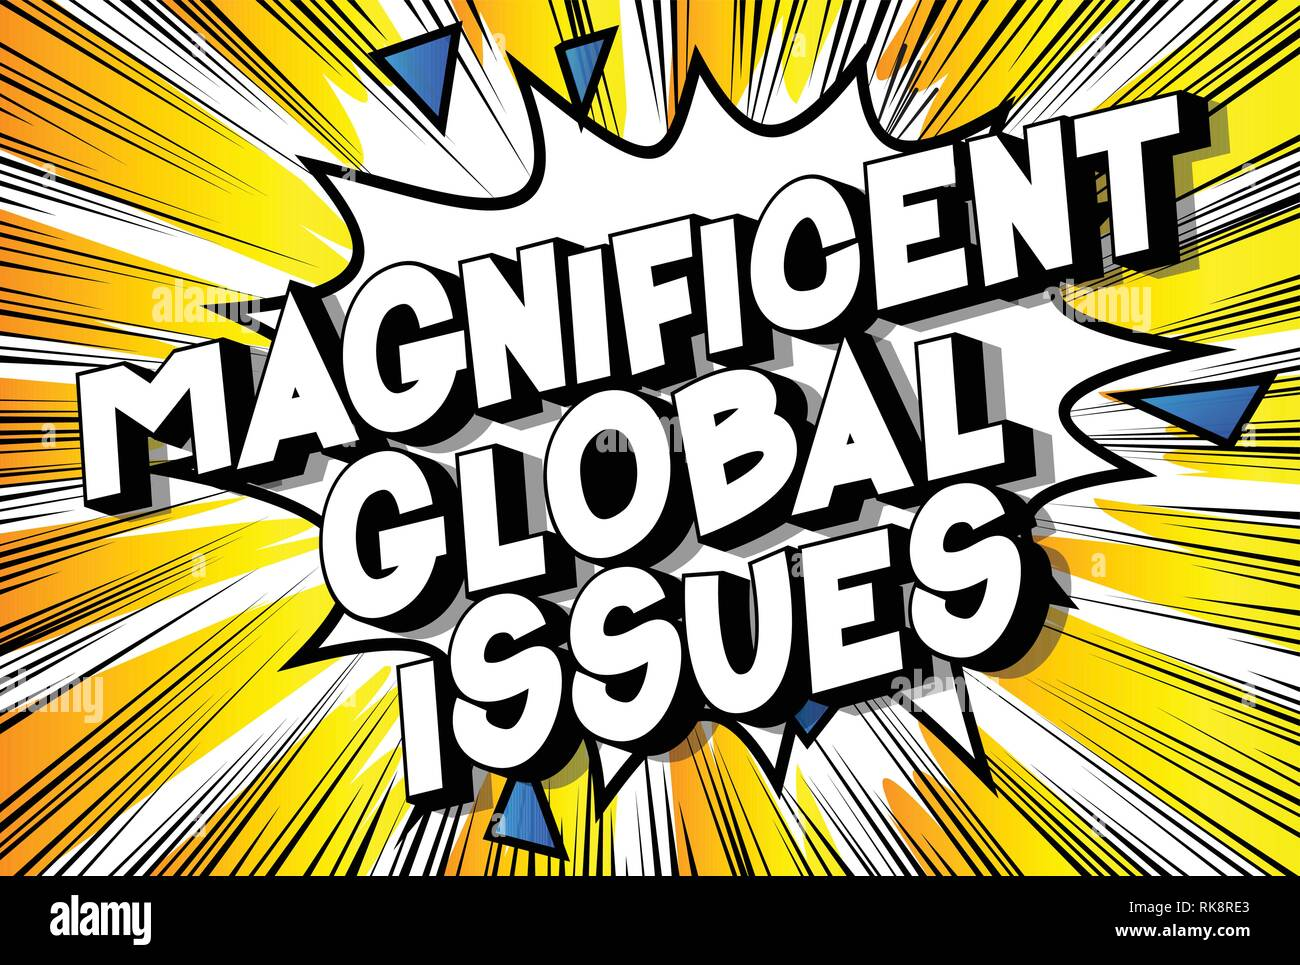 Magnificent Global Issues - Vector illustrated comic book style phrase on abstract background. - Stock Vector